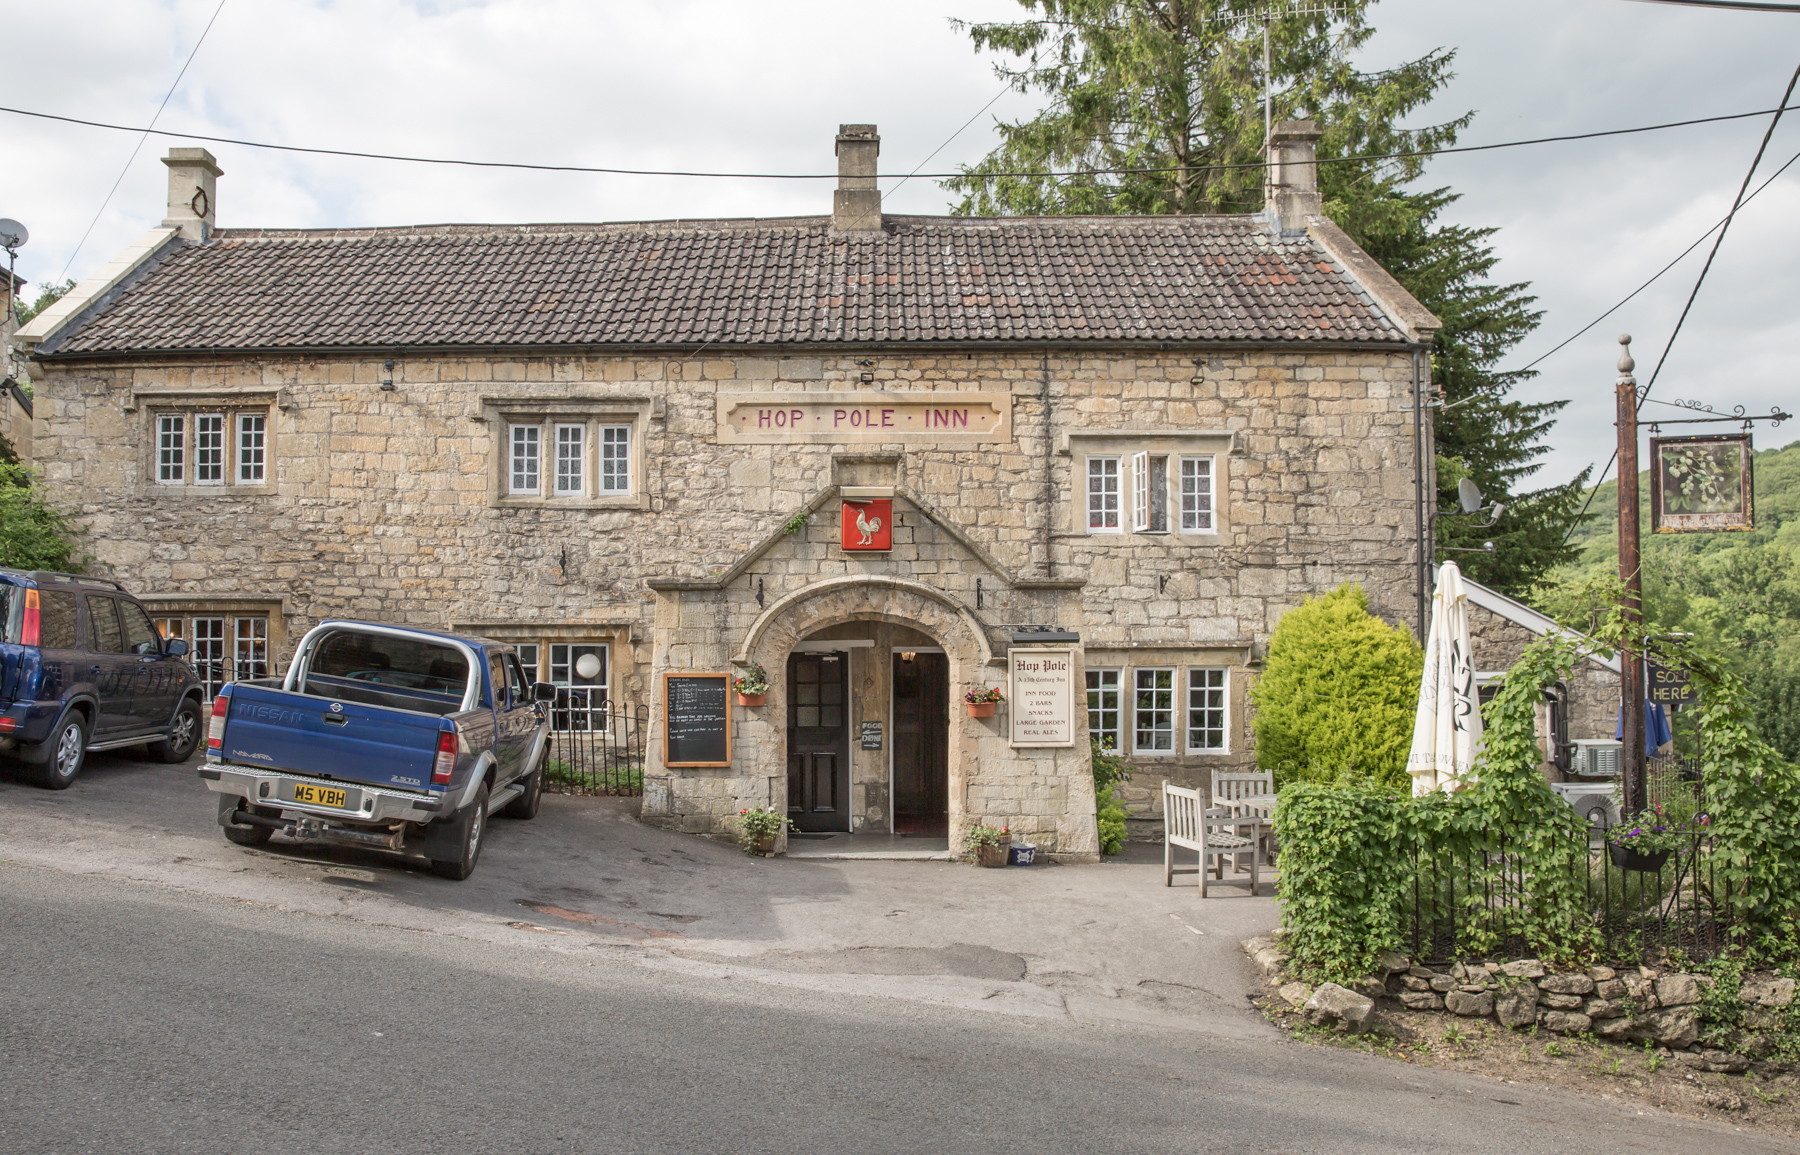 The Hop Pole in Limpley Stoke